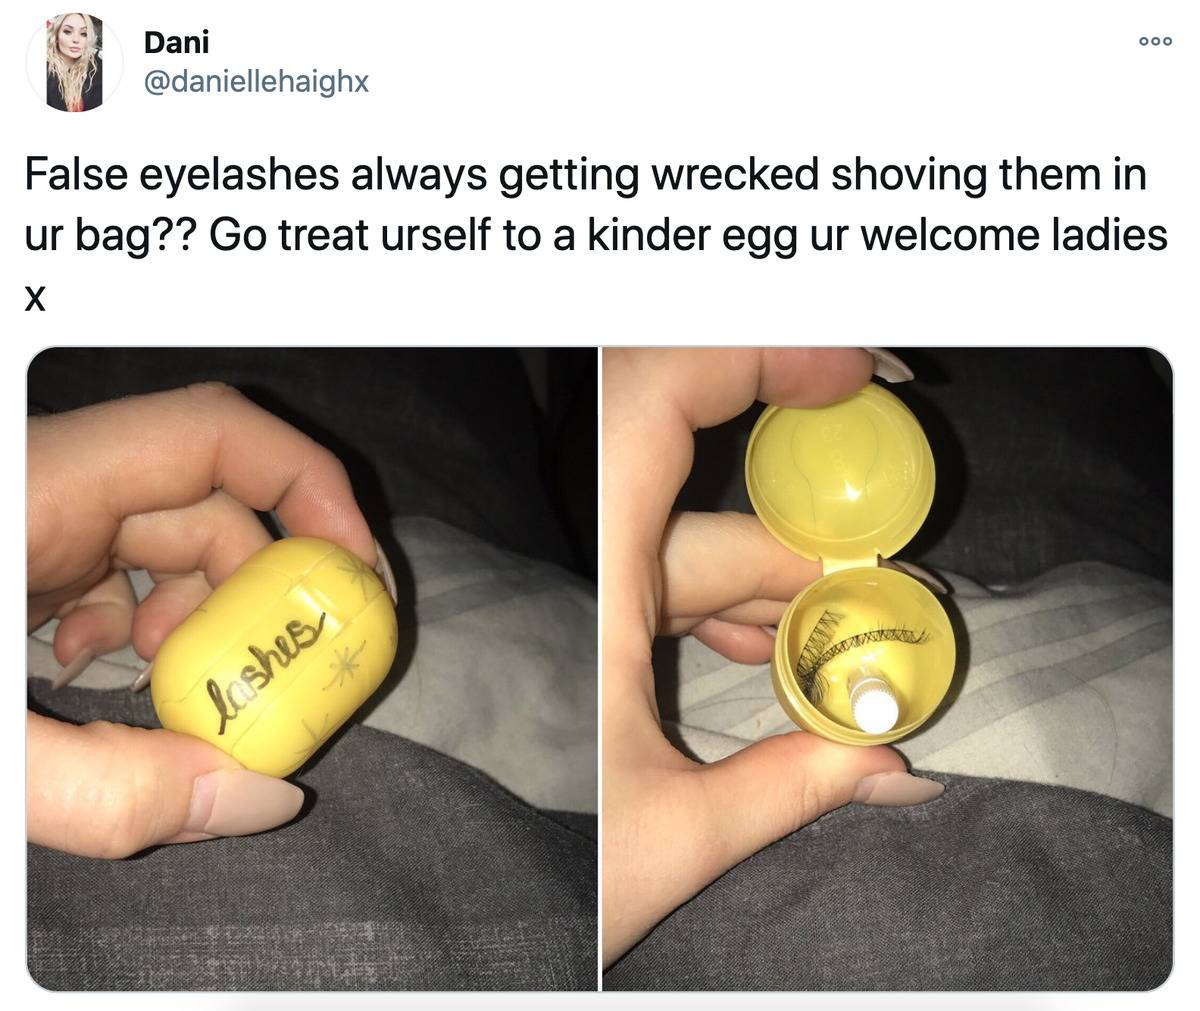 Tweet: False eyelashes always getting wrecked shoving them in your bag? Go treat yourself to a kinder egg. You're welcome, ladies.